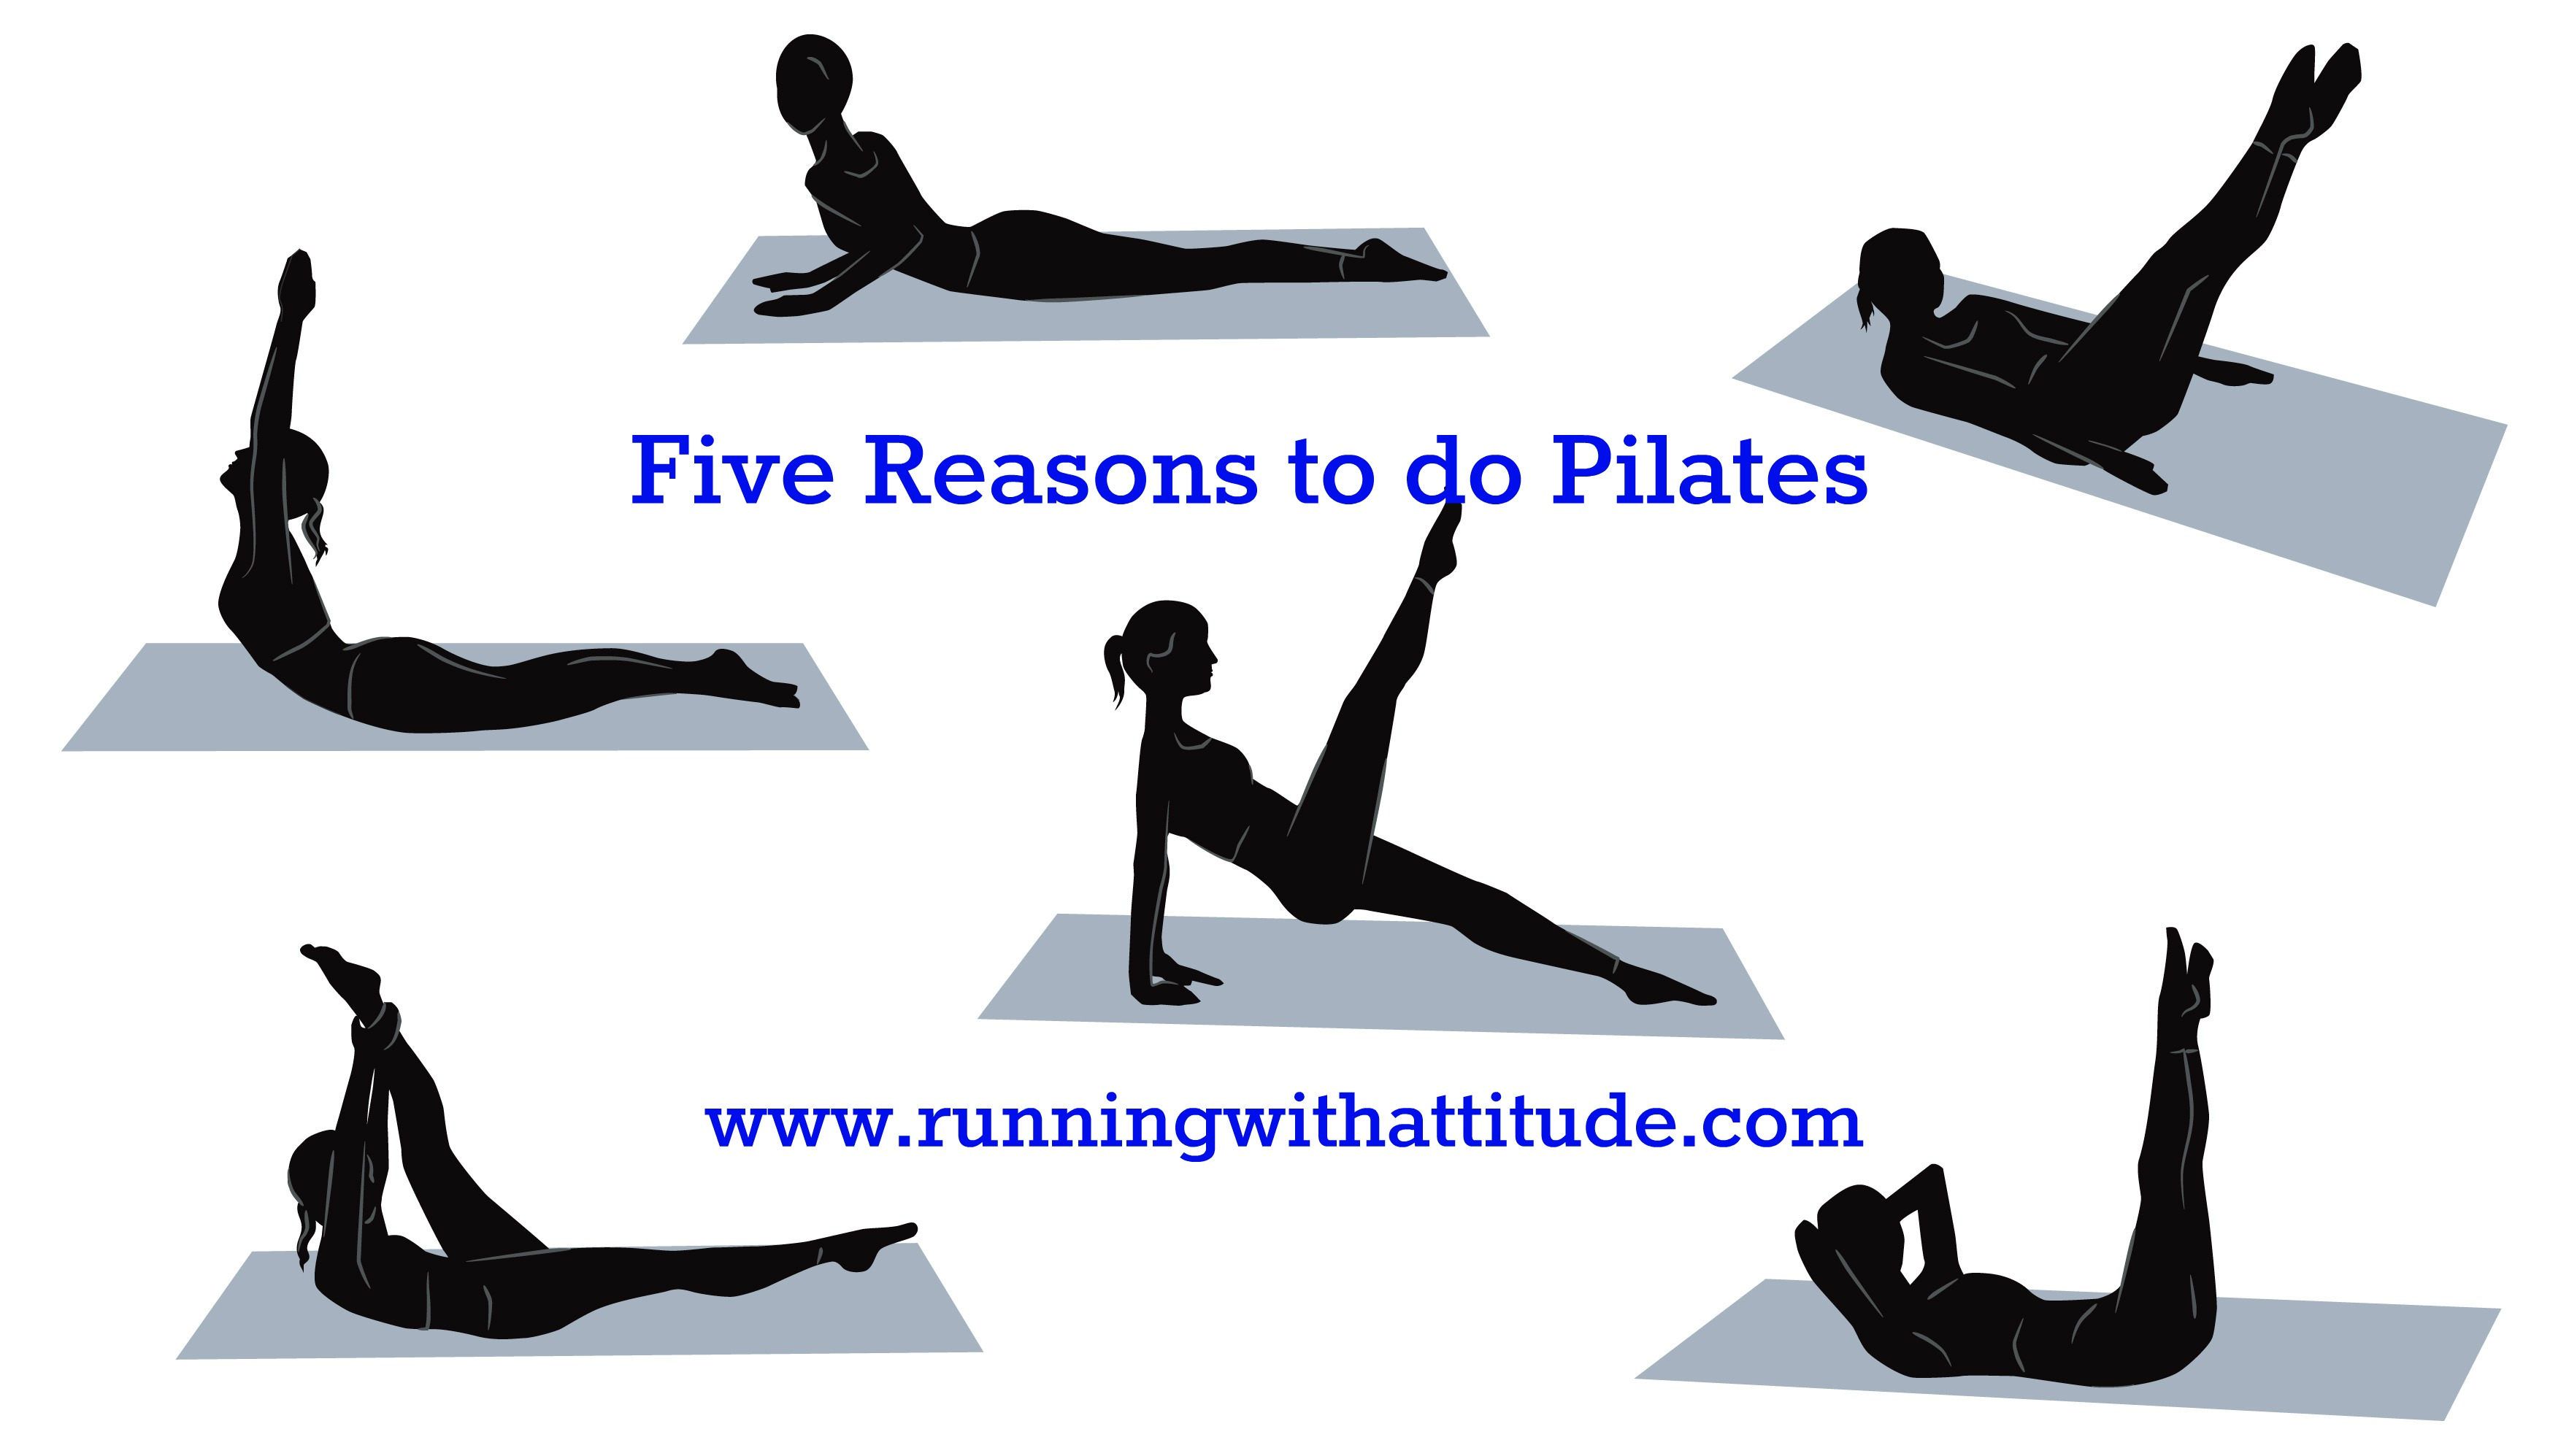 Five Reasons to do Pilates